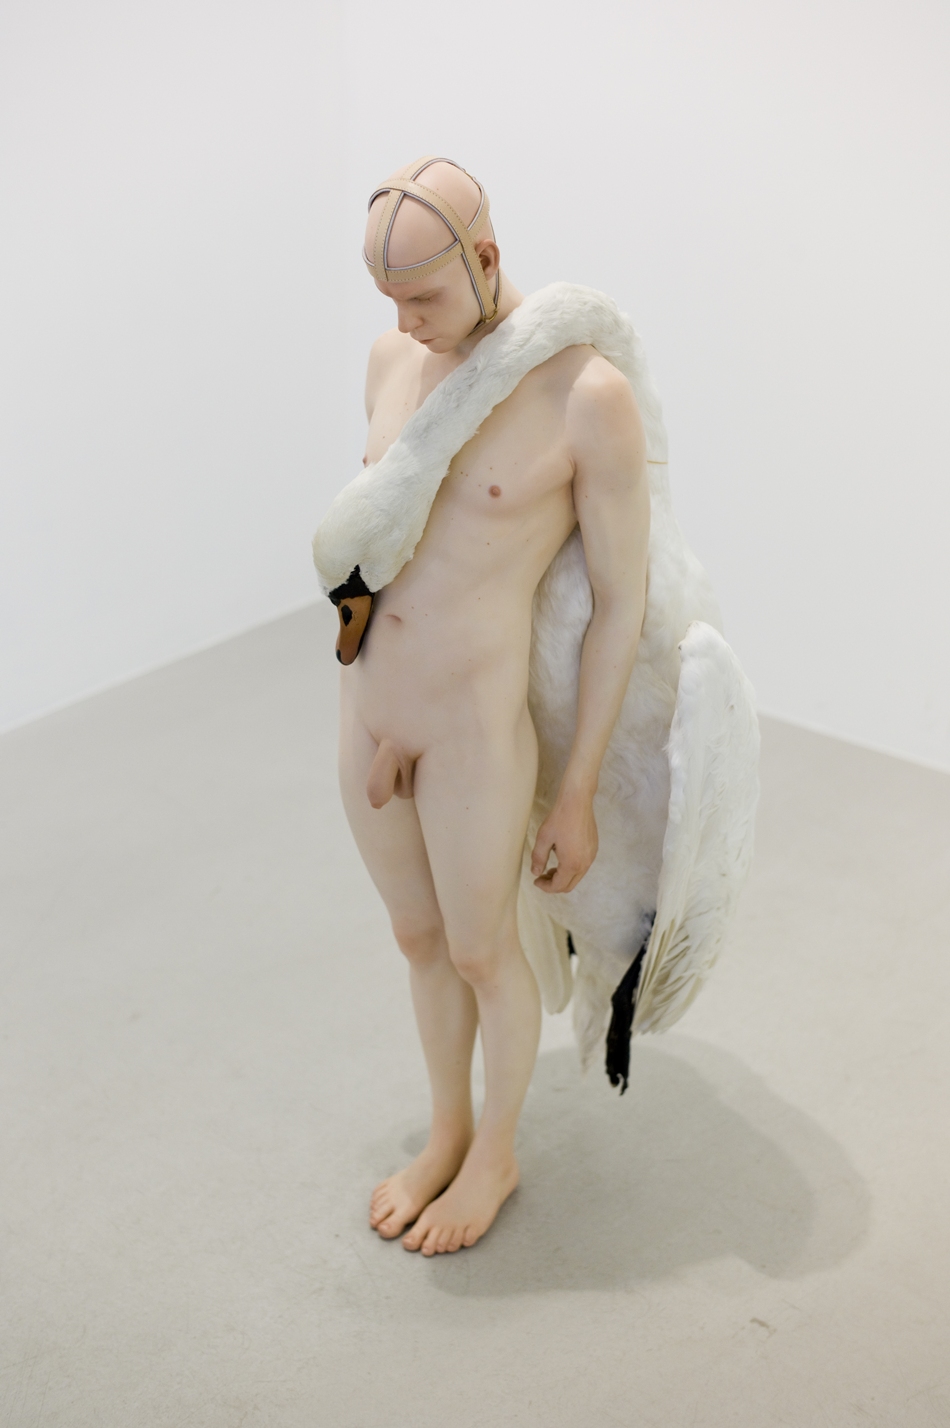 Christian-Pontus Andersson – sculptures